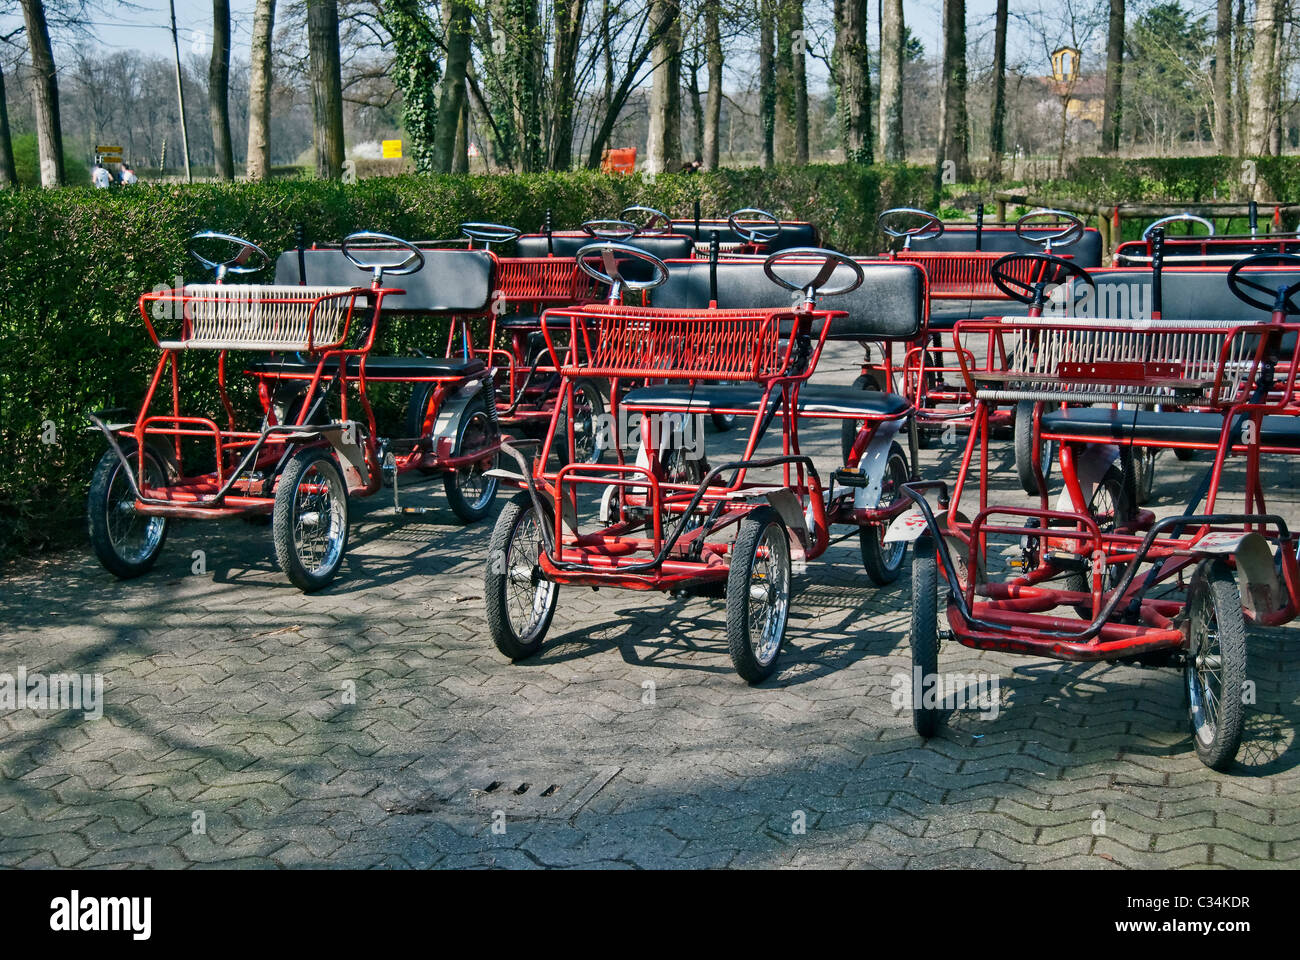 rickshaw in the park of Monza, Italy - Stock Image